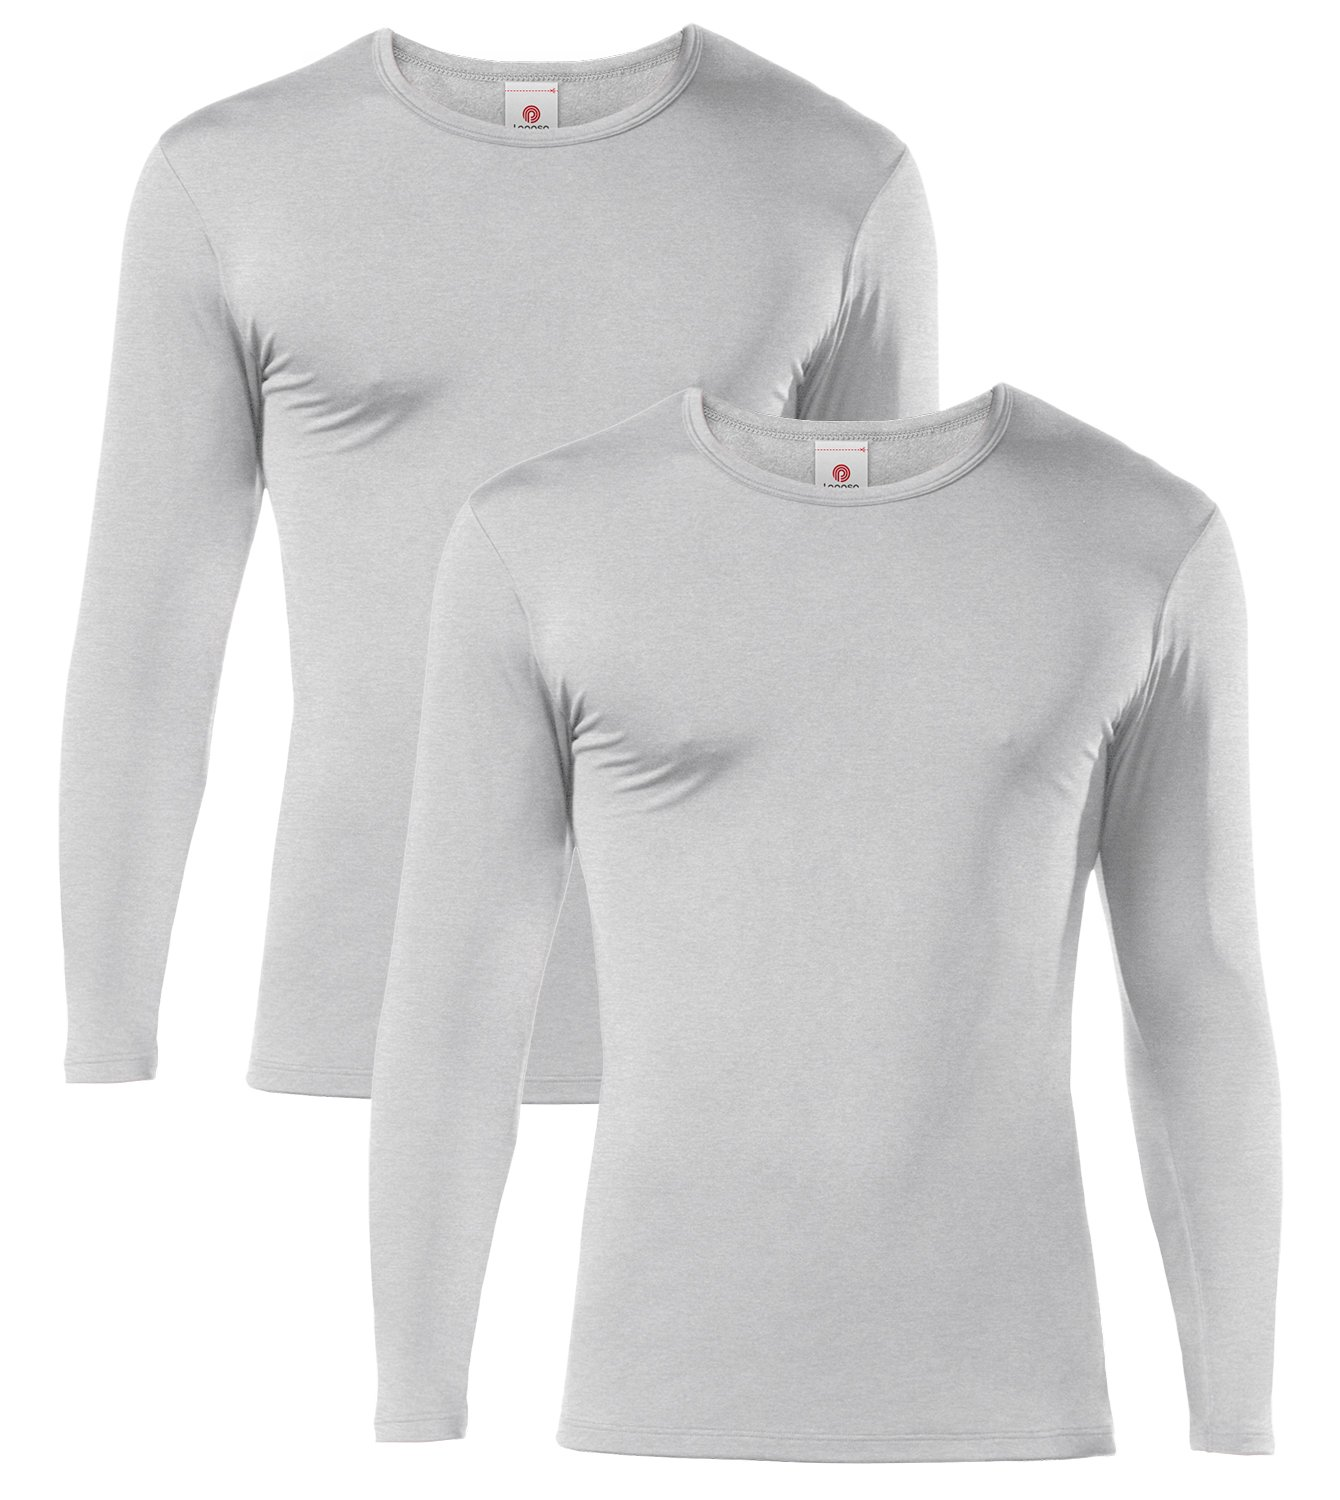 LAPASA Men's Lightweight Thermal Underwear Tops Fleece Lined Base Layer Long Sleeve Shirts 2 Pack M09 (Small, Grey)